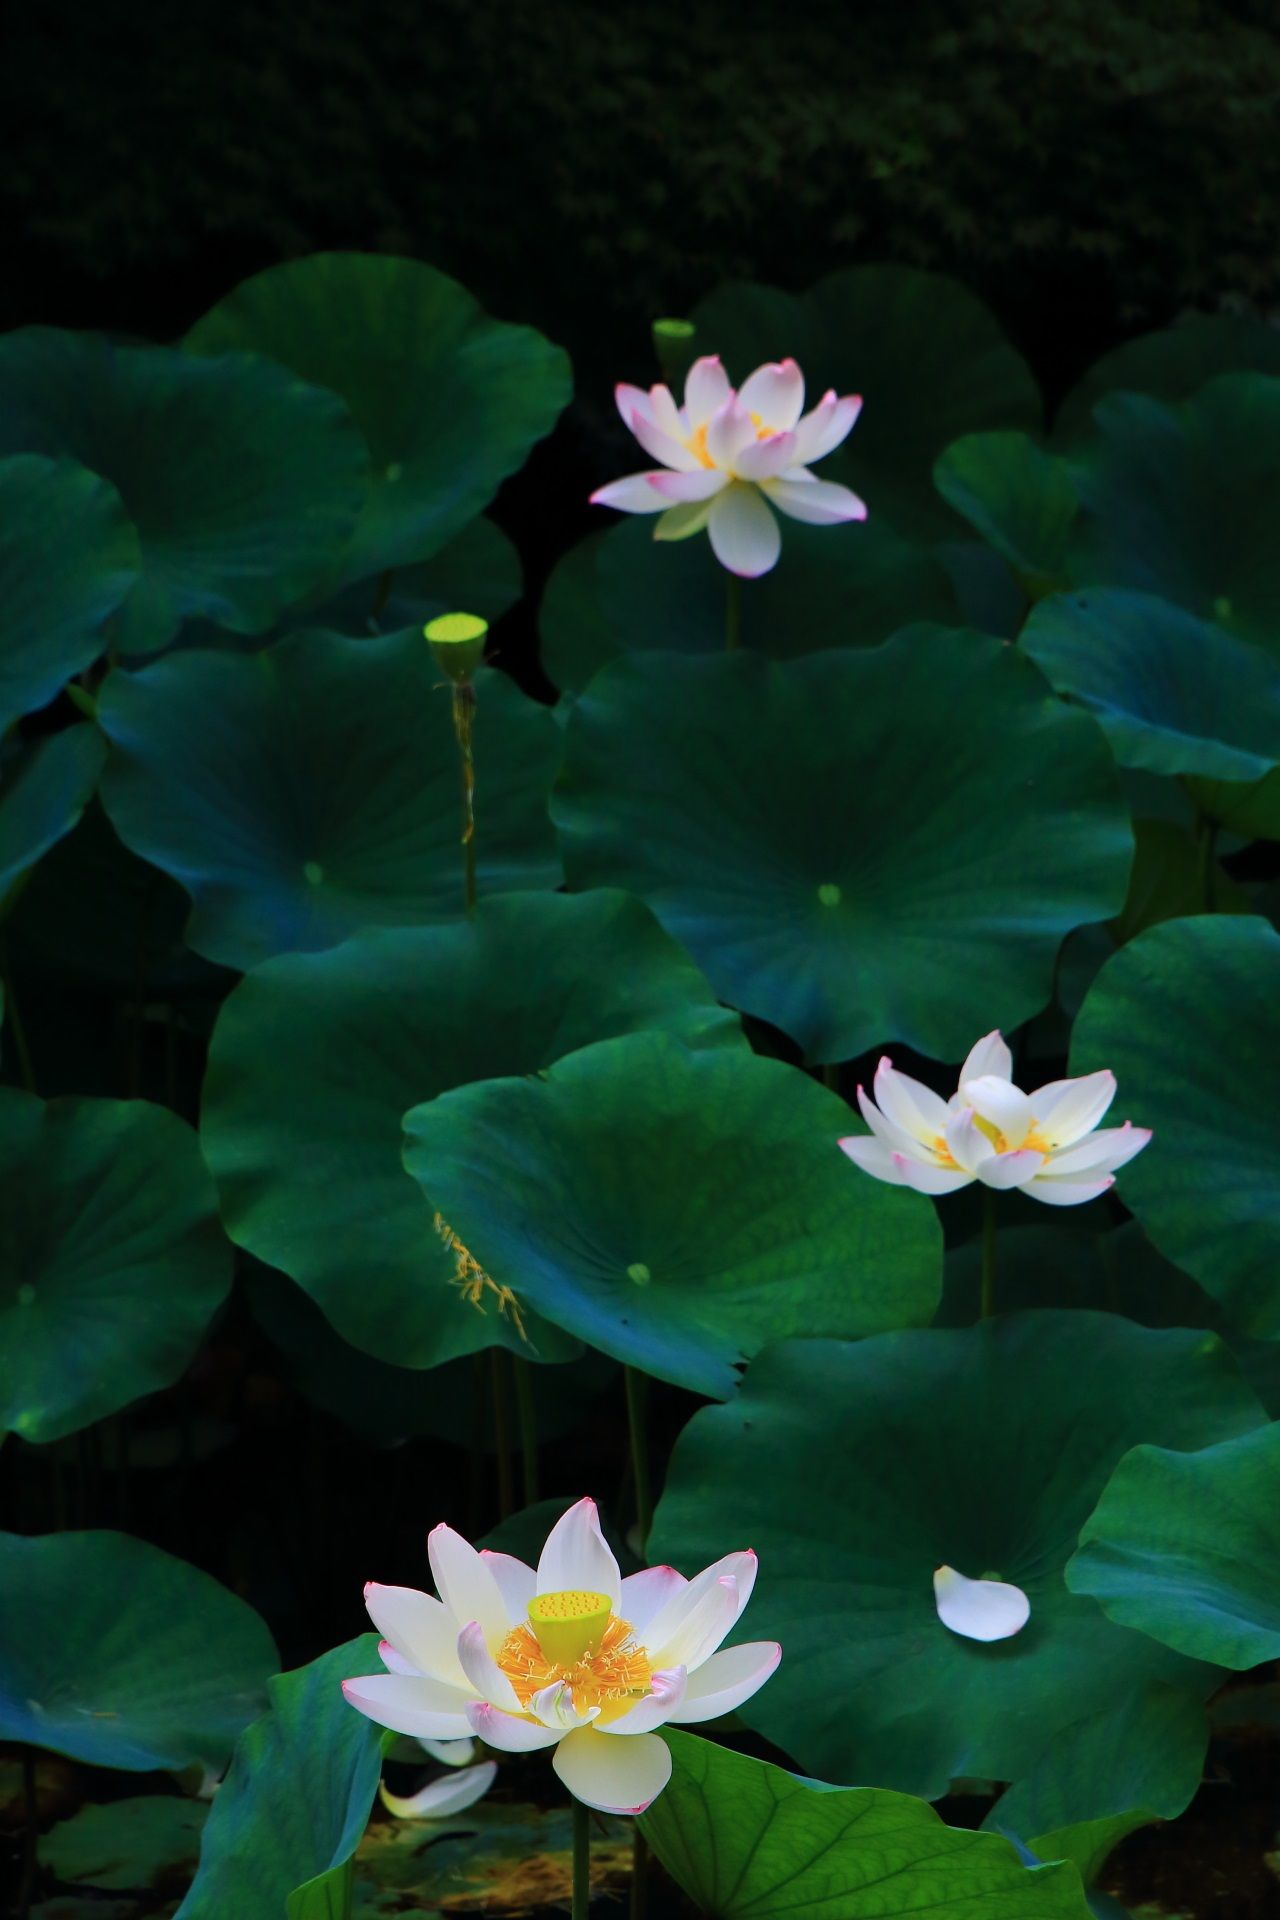 A Beautiful Lotus Of Chionin Temple In Kyoto Japan ハスの花 美しい庭 蓮の花